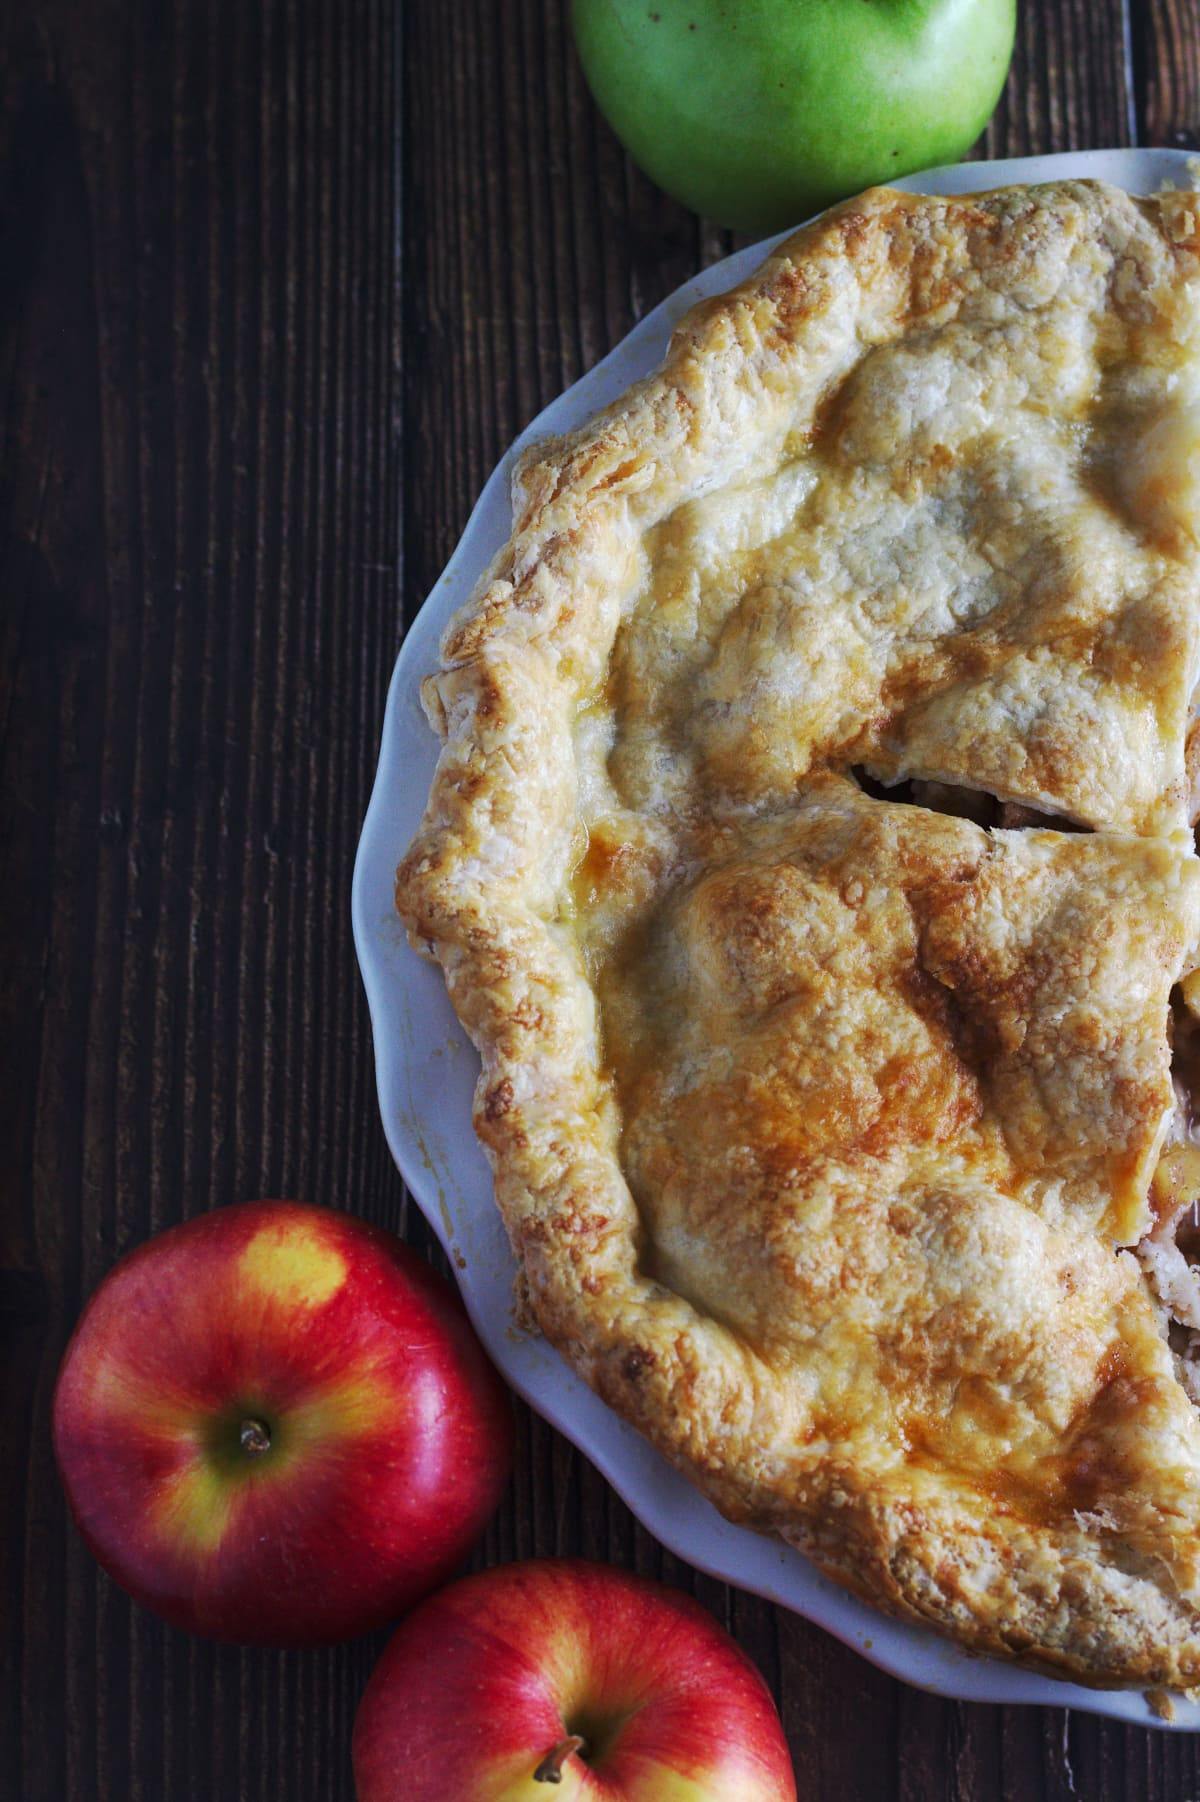 A pie with apples around it.